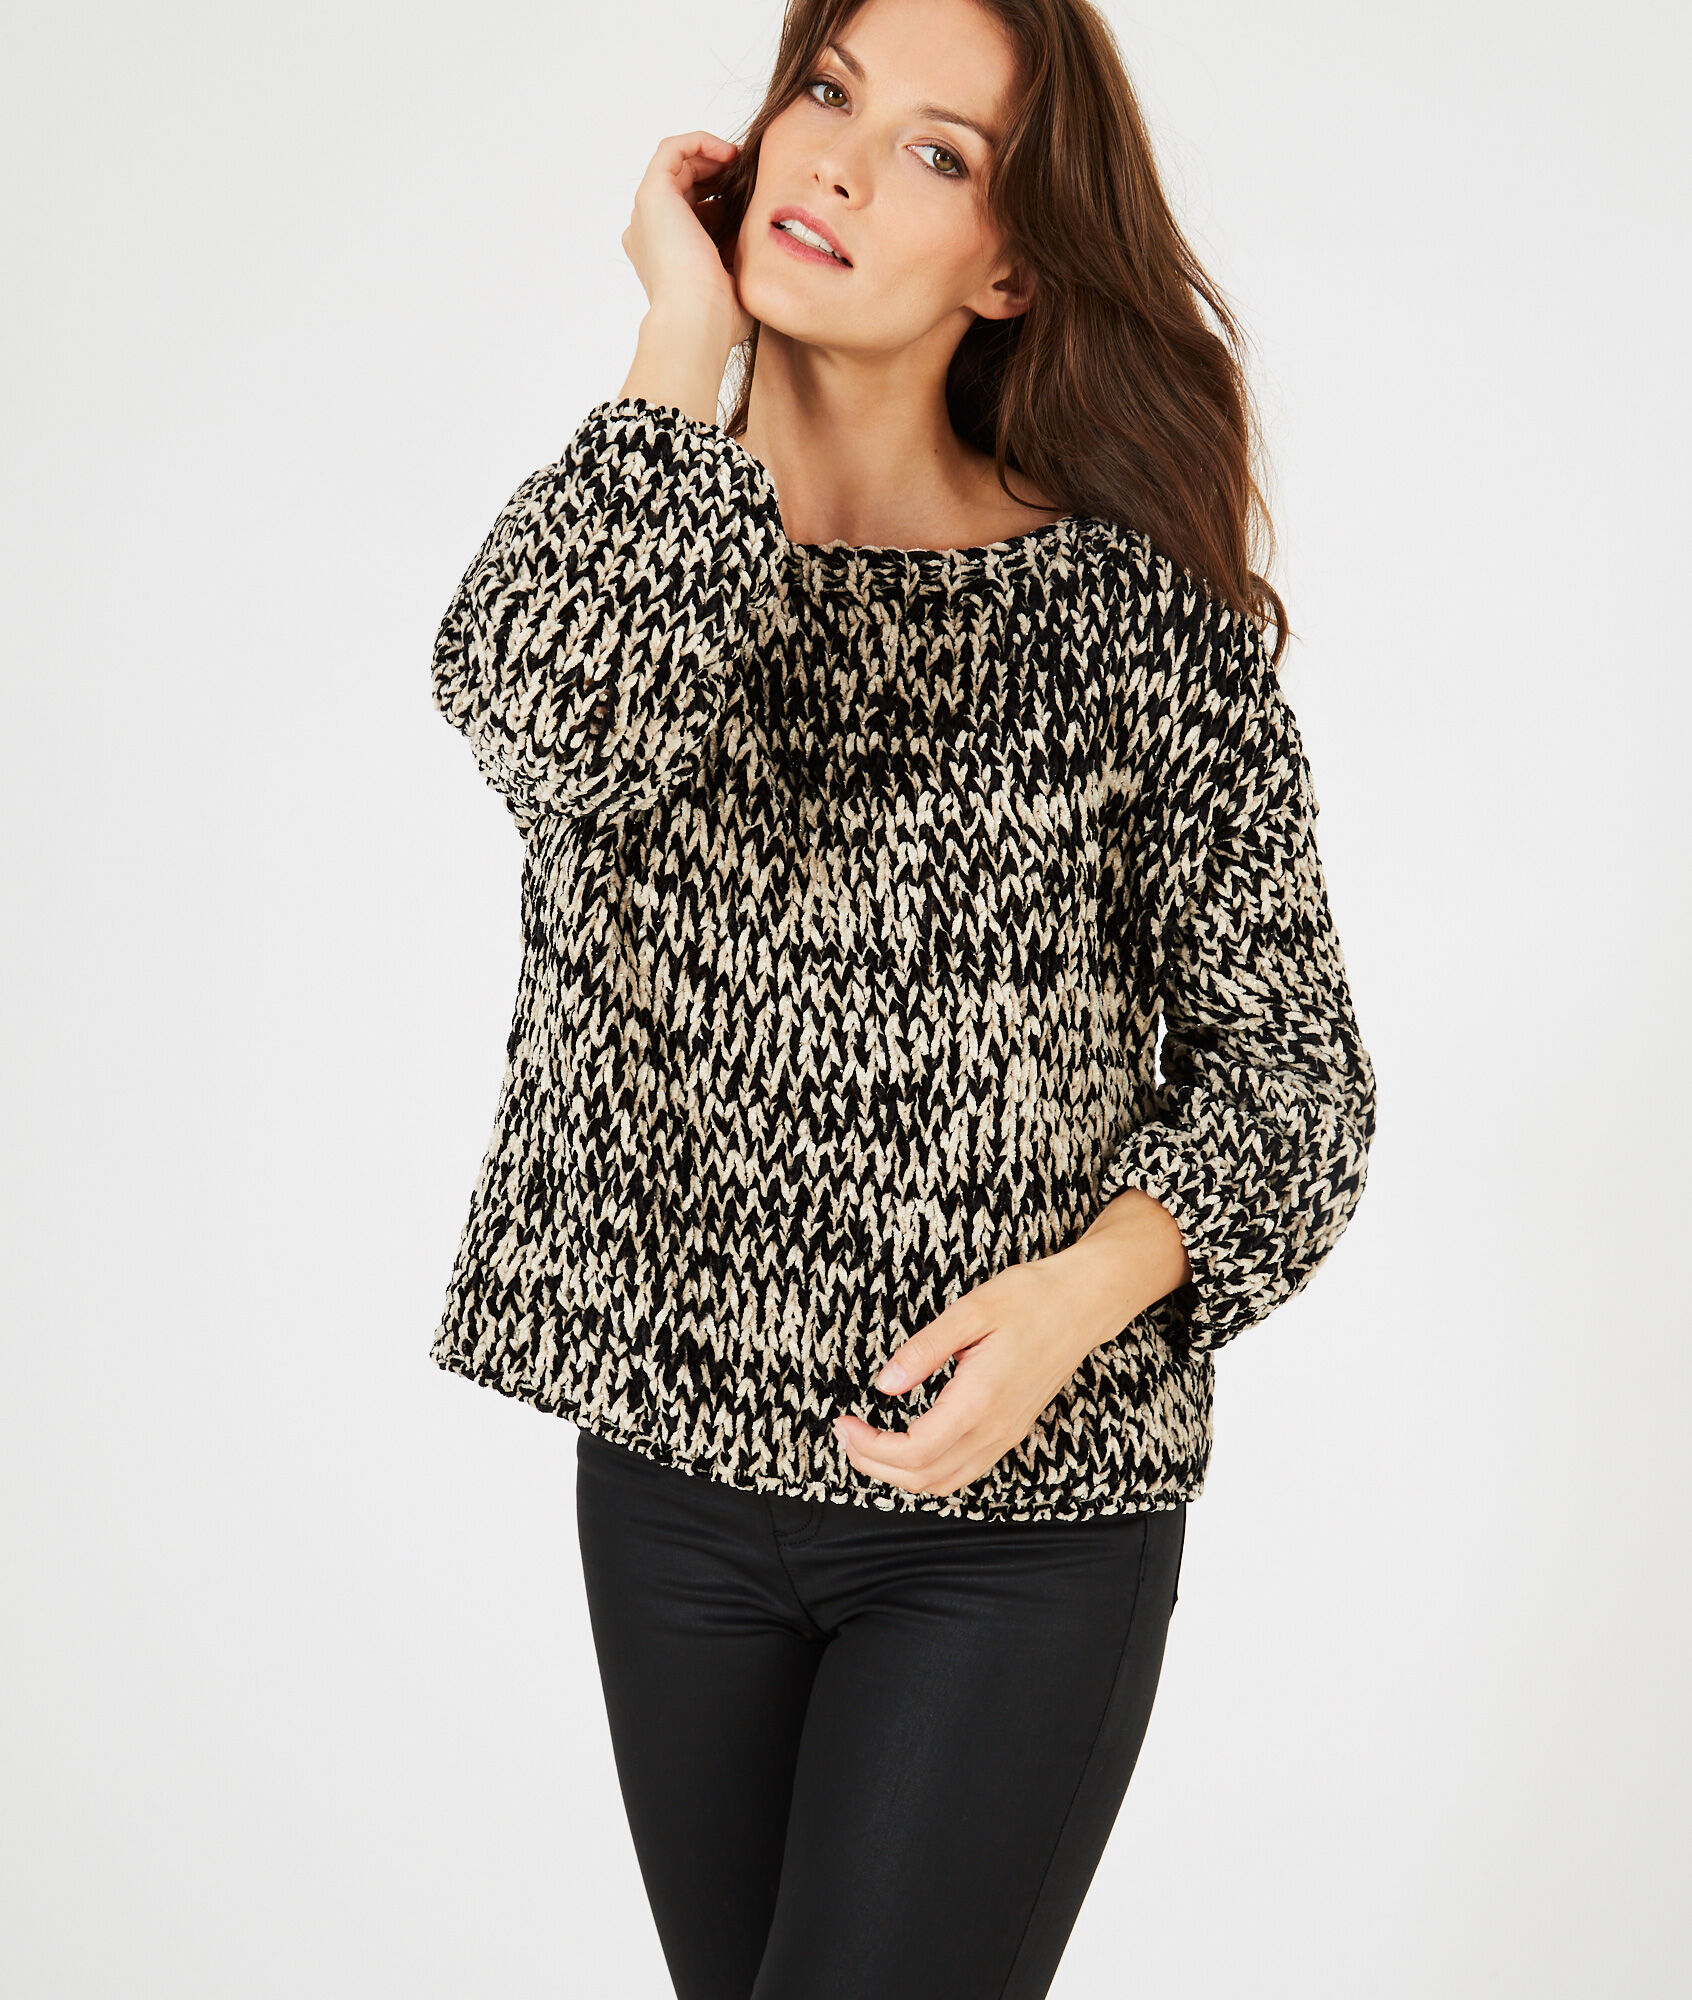 Bico black and white chunky-knit sweater - 123